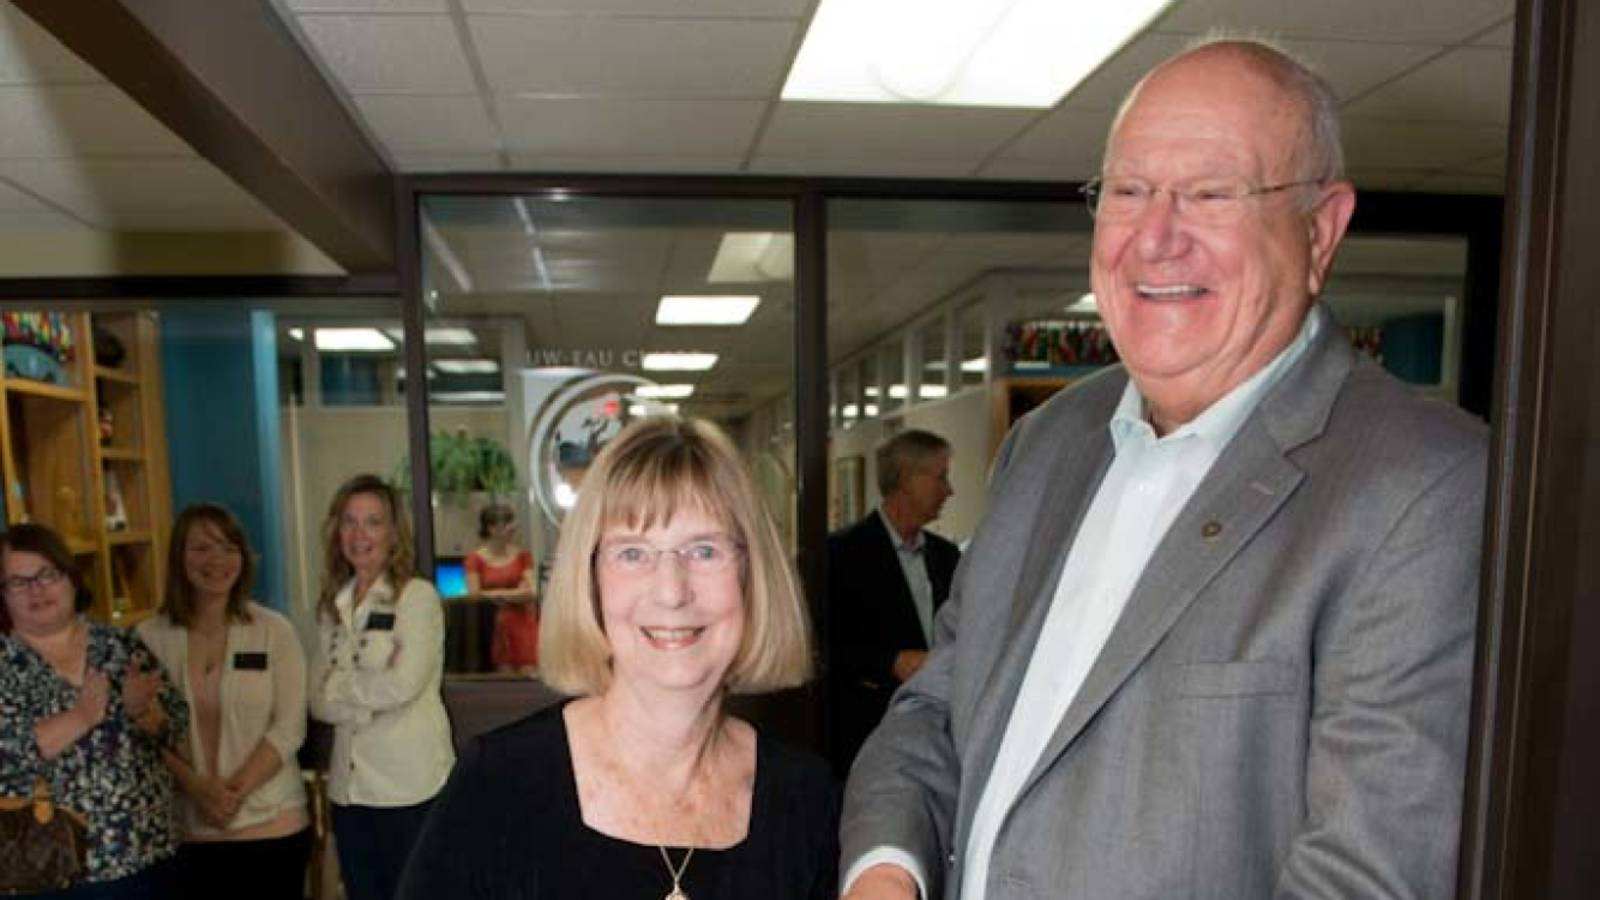 William J. and Marian A. Klish at the opening of the Health Careers Center.